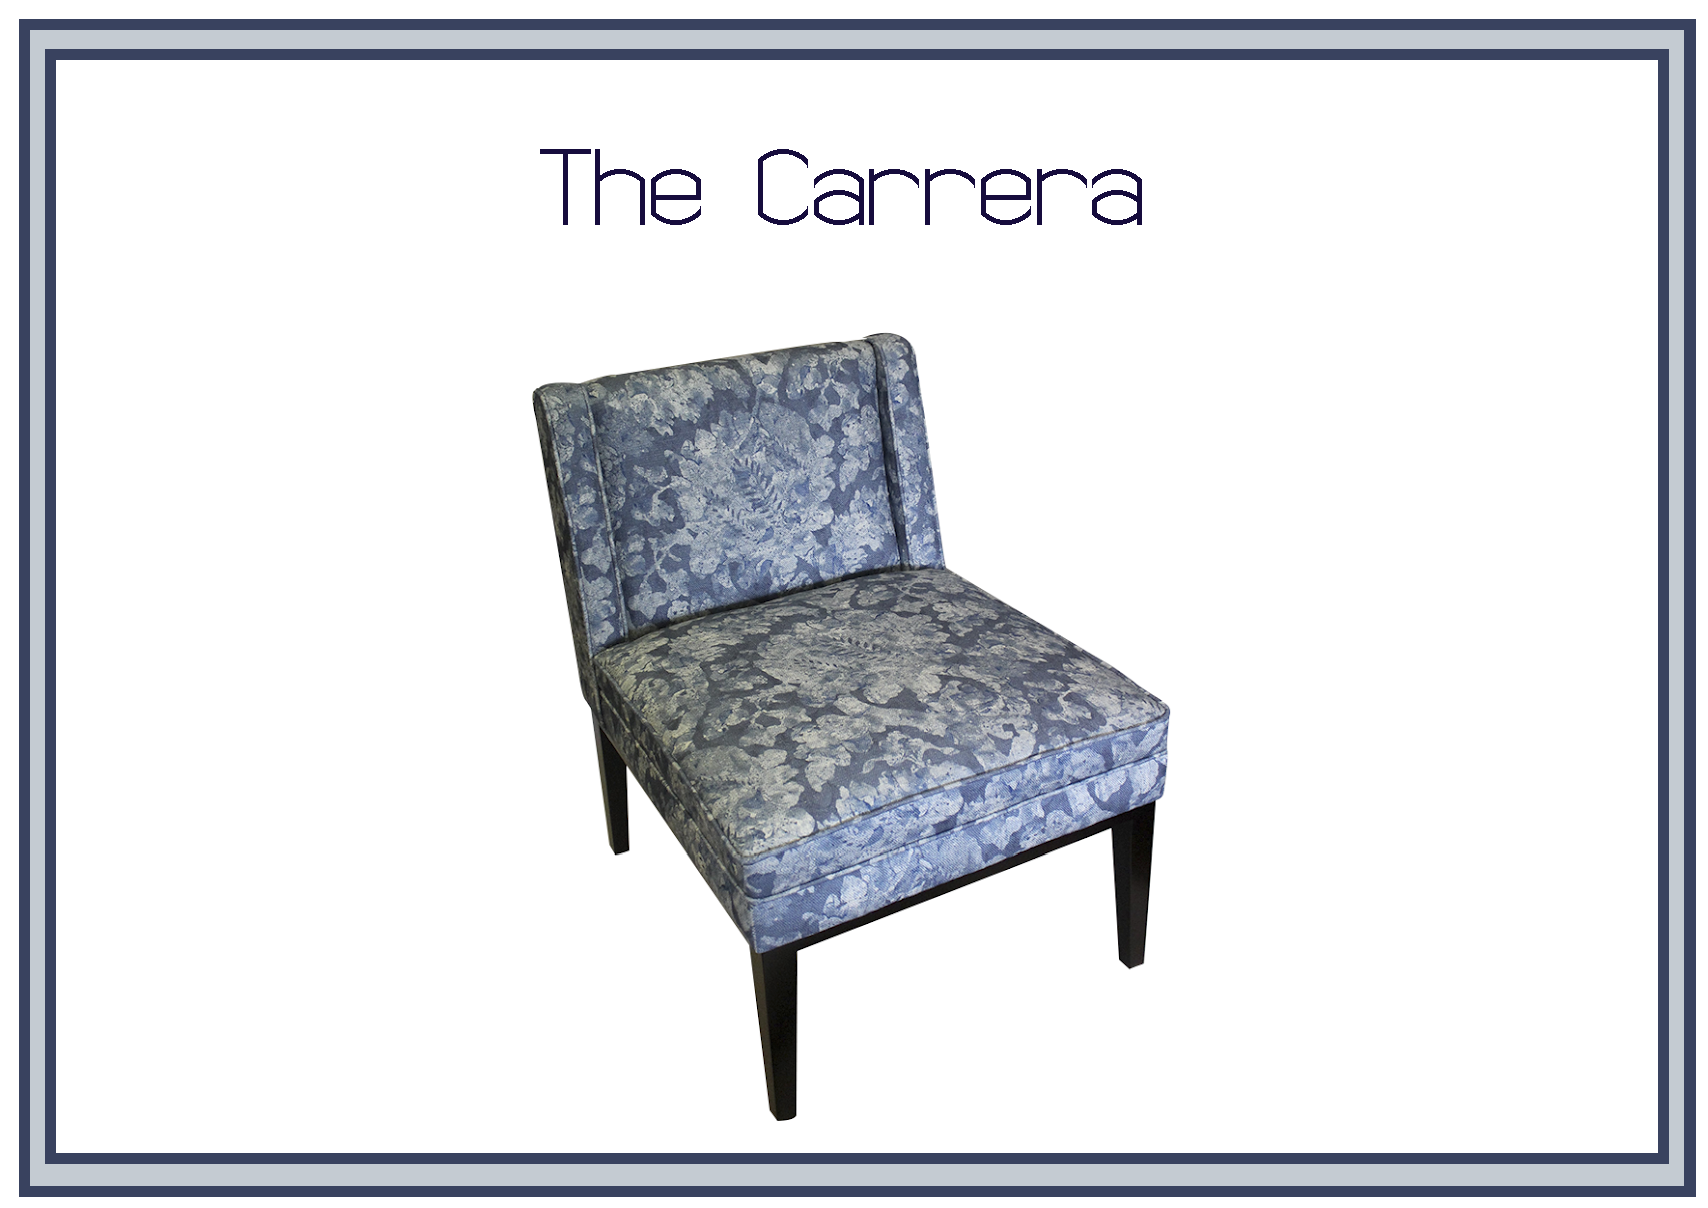 Ryle Carrera Chair.png